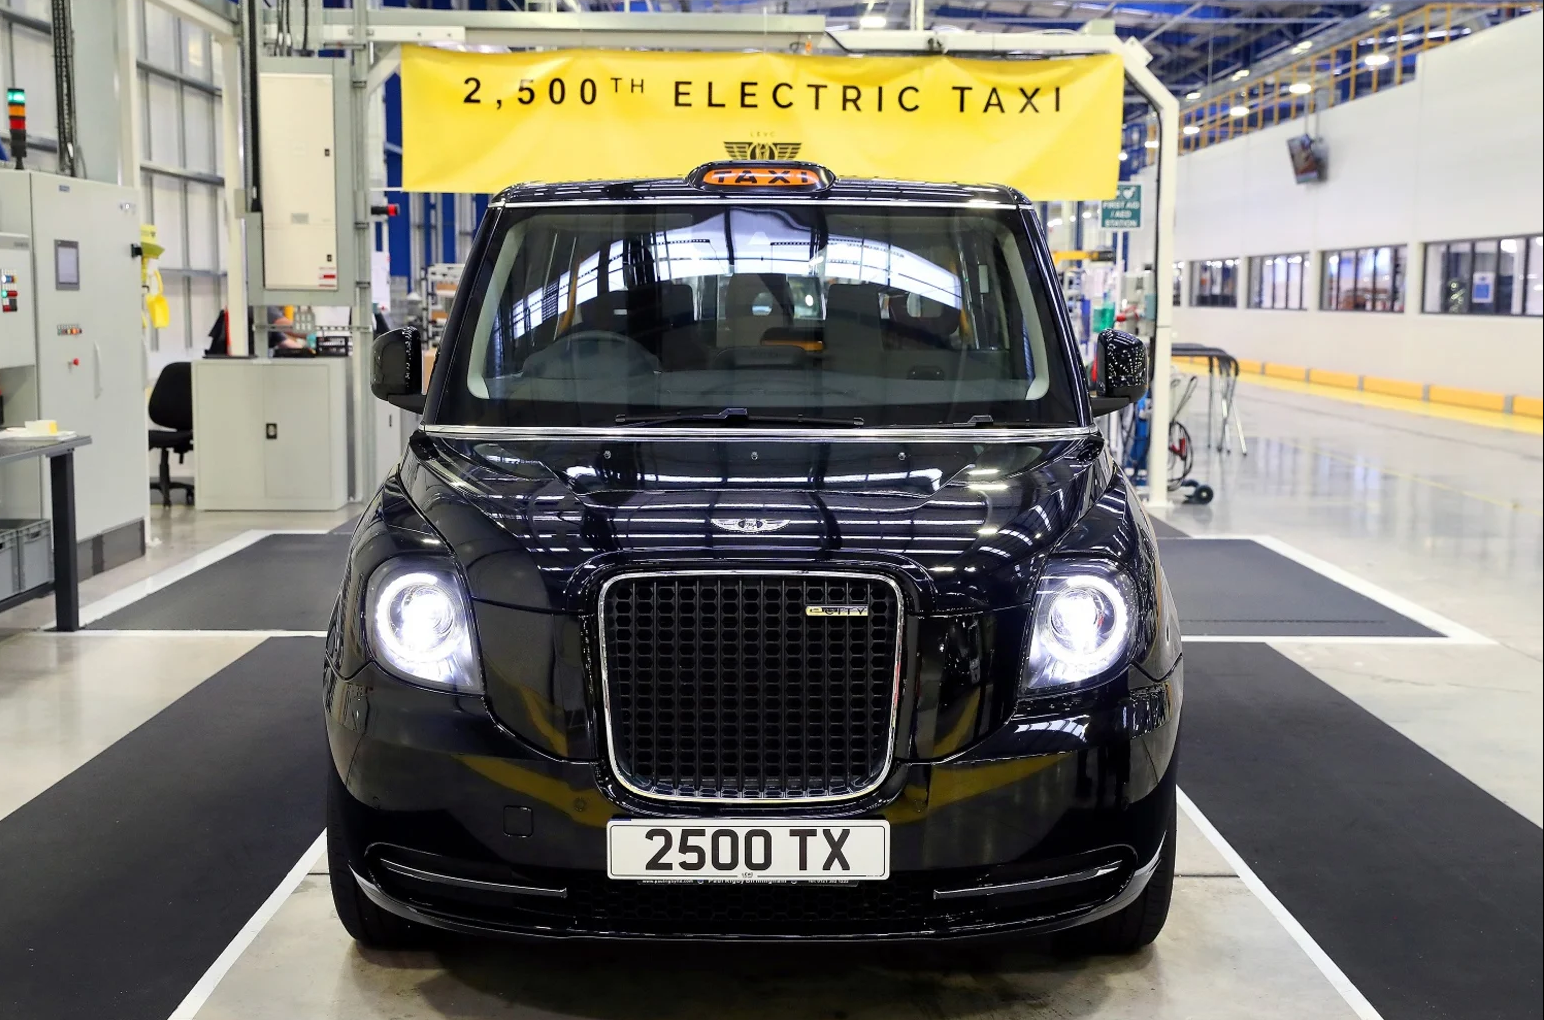 LEVC Says Electric Taxis Have Saved £3 5 Million In Fuel